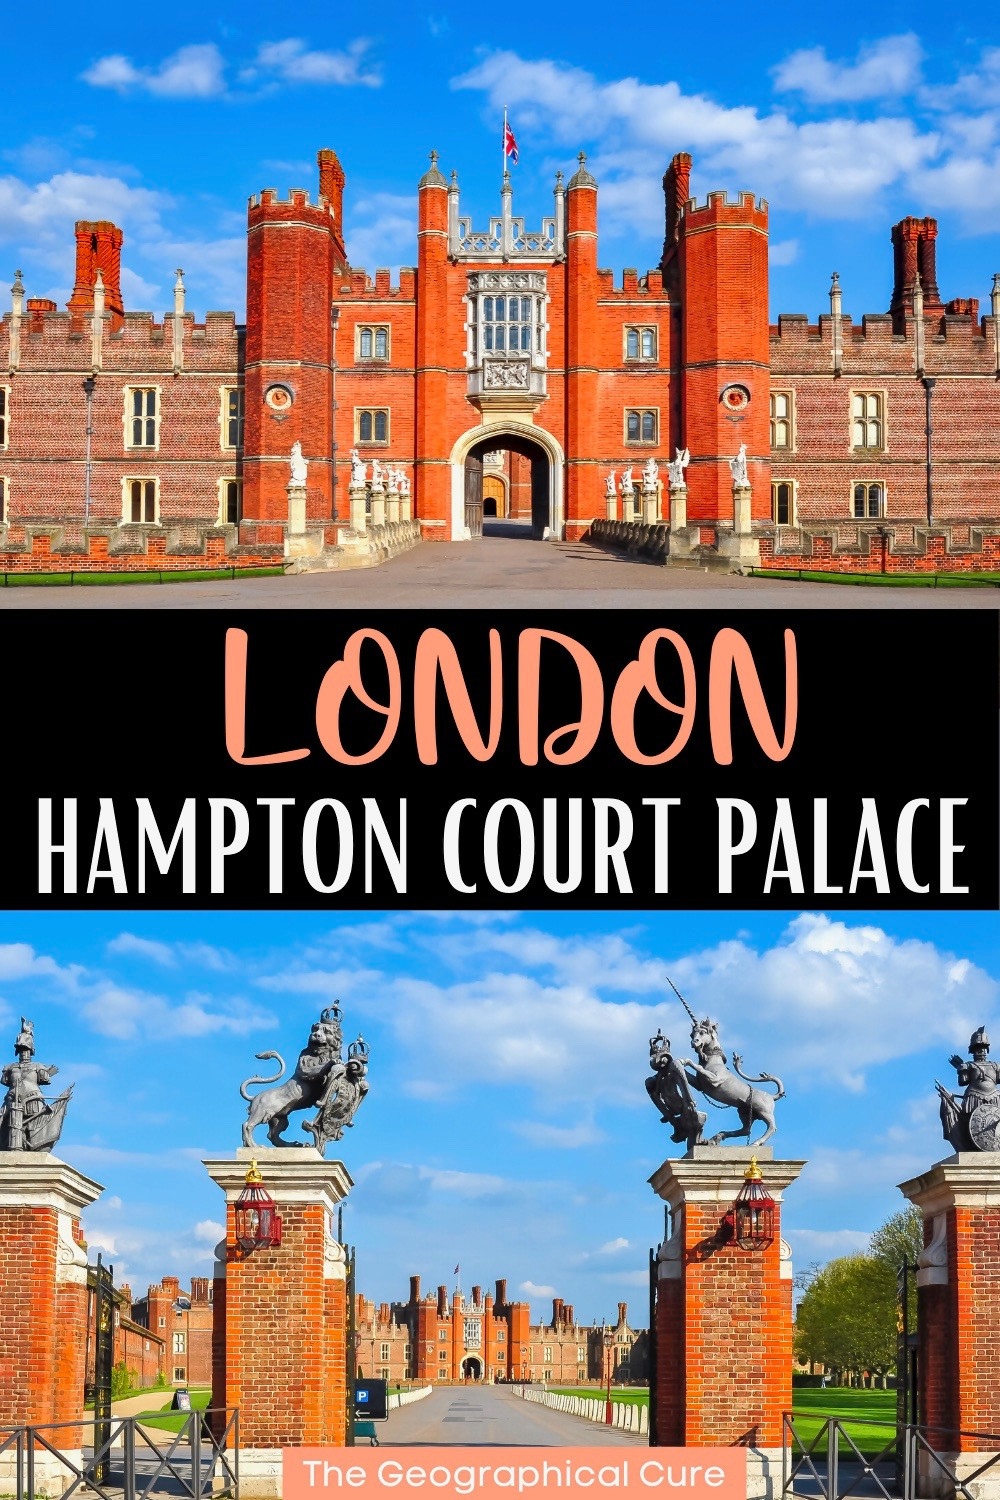 ultimate guide to Hampton Court Palace, a must see landmark in England